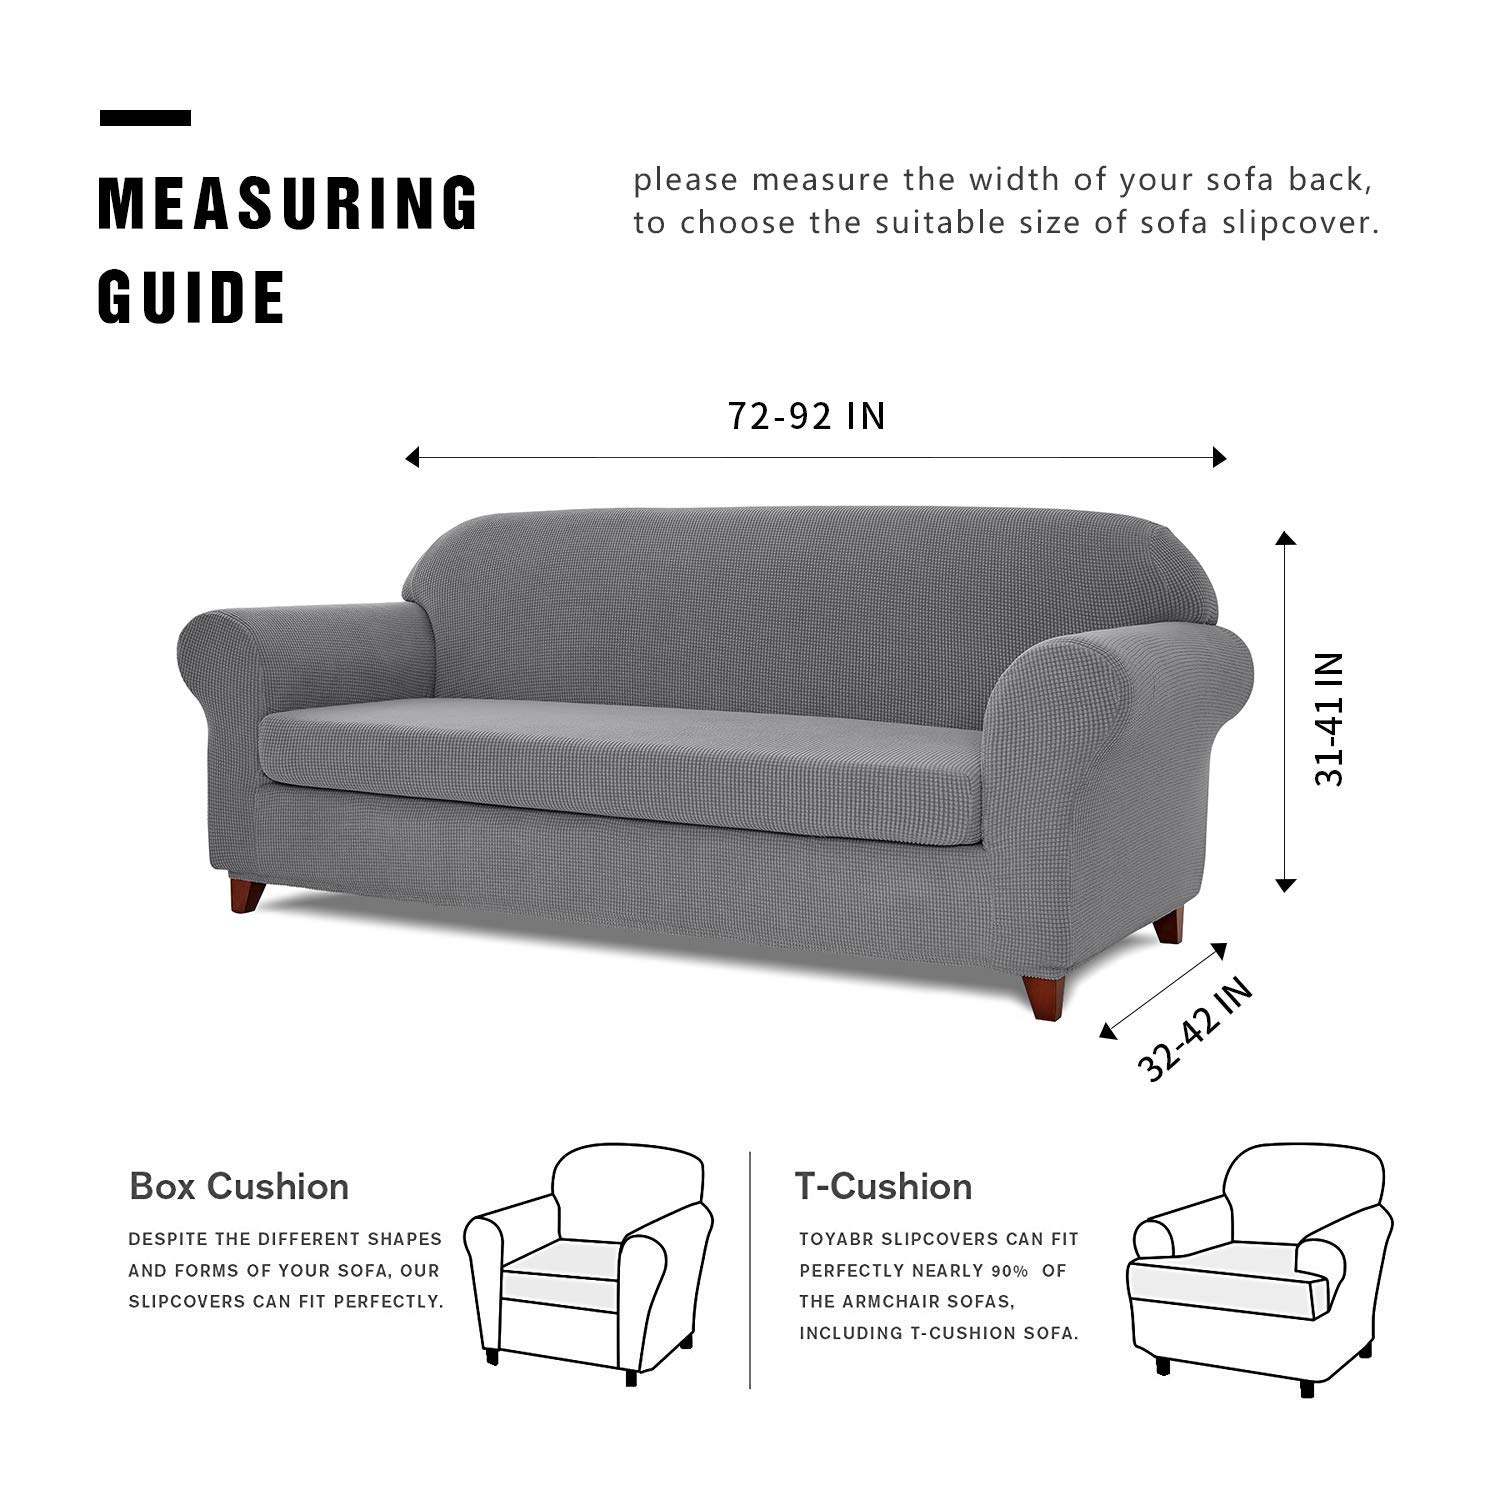 Amazon.com: TOYABR 2 Piece Jacquard Stretchy Fabric Sofa Cover Living Room  Polyester Sofa Slipcovers Fitted Couch Protector For Furniture (Light Gray,  ...